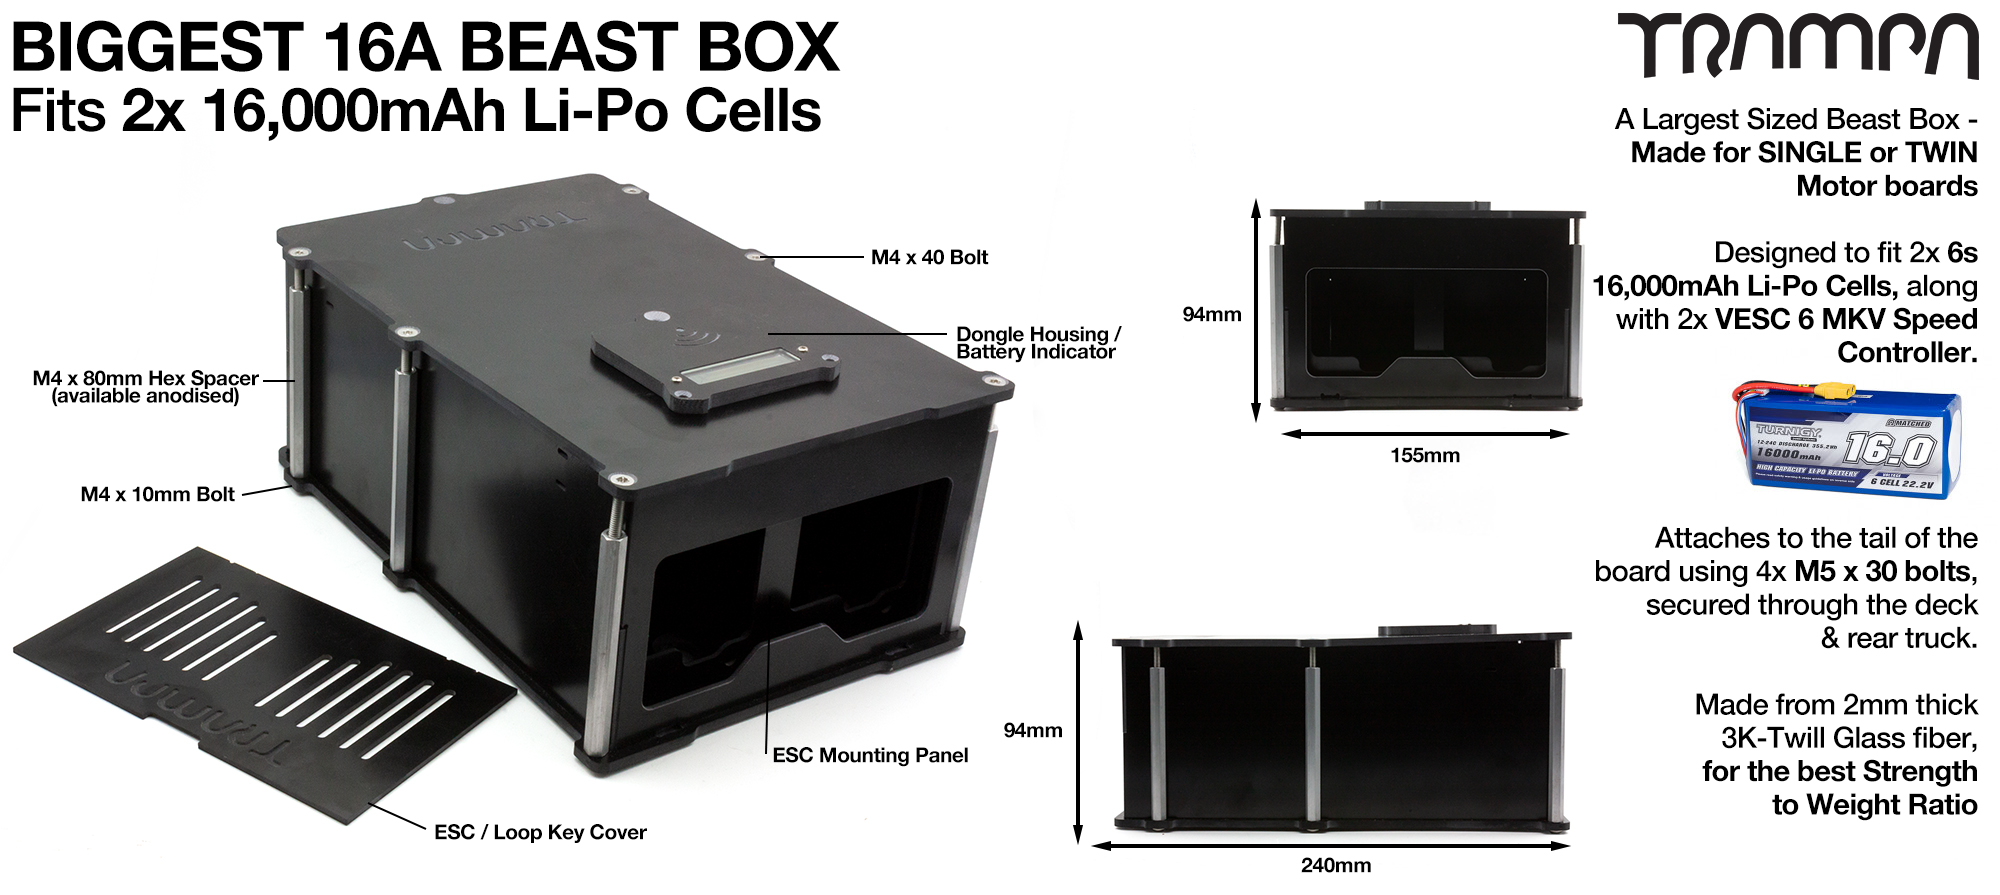 16A BIGGEST BEAST Box to fit 2x 6s 16000 mAh cells with Internal VESC Housing - TWIN Motor